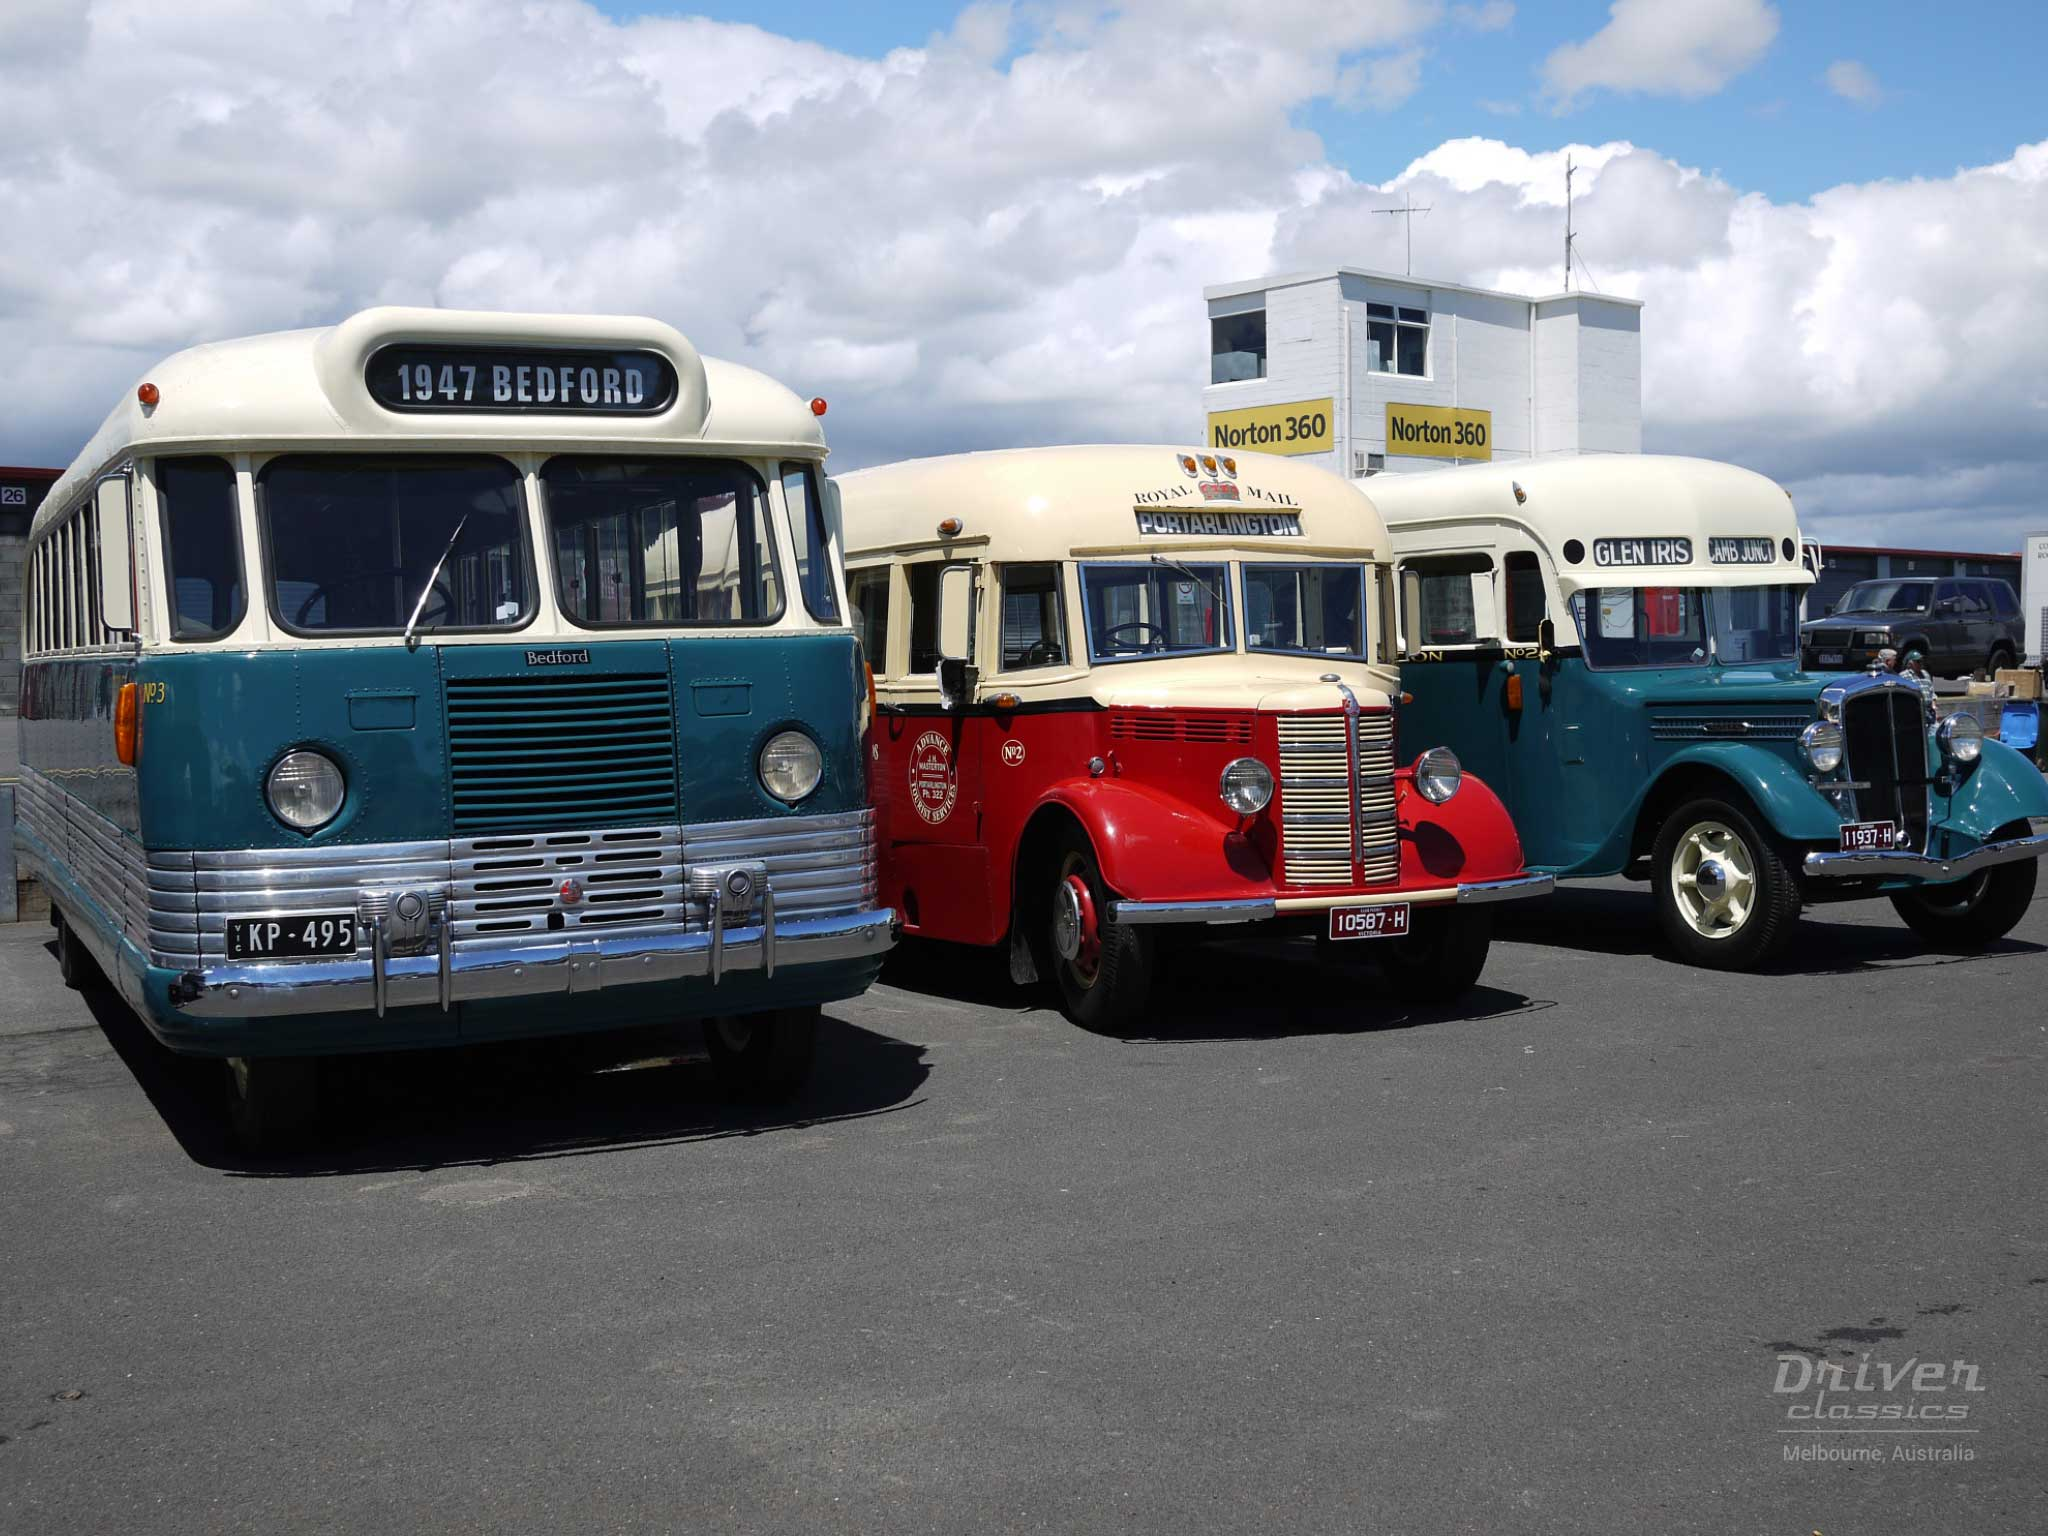 1946 Bedford OB with 1947 Bedford OB and 1936 Federal buses